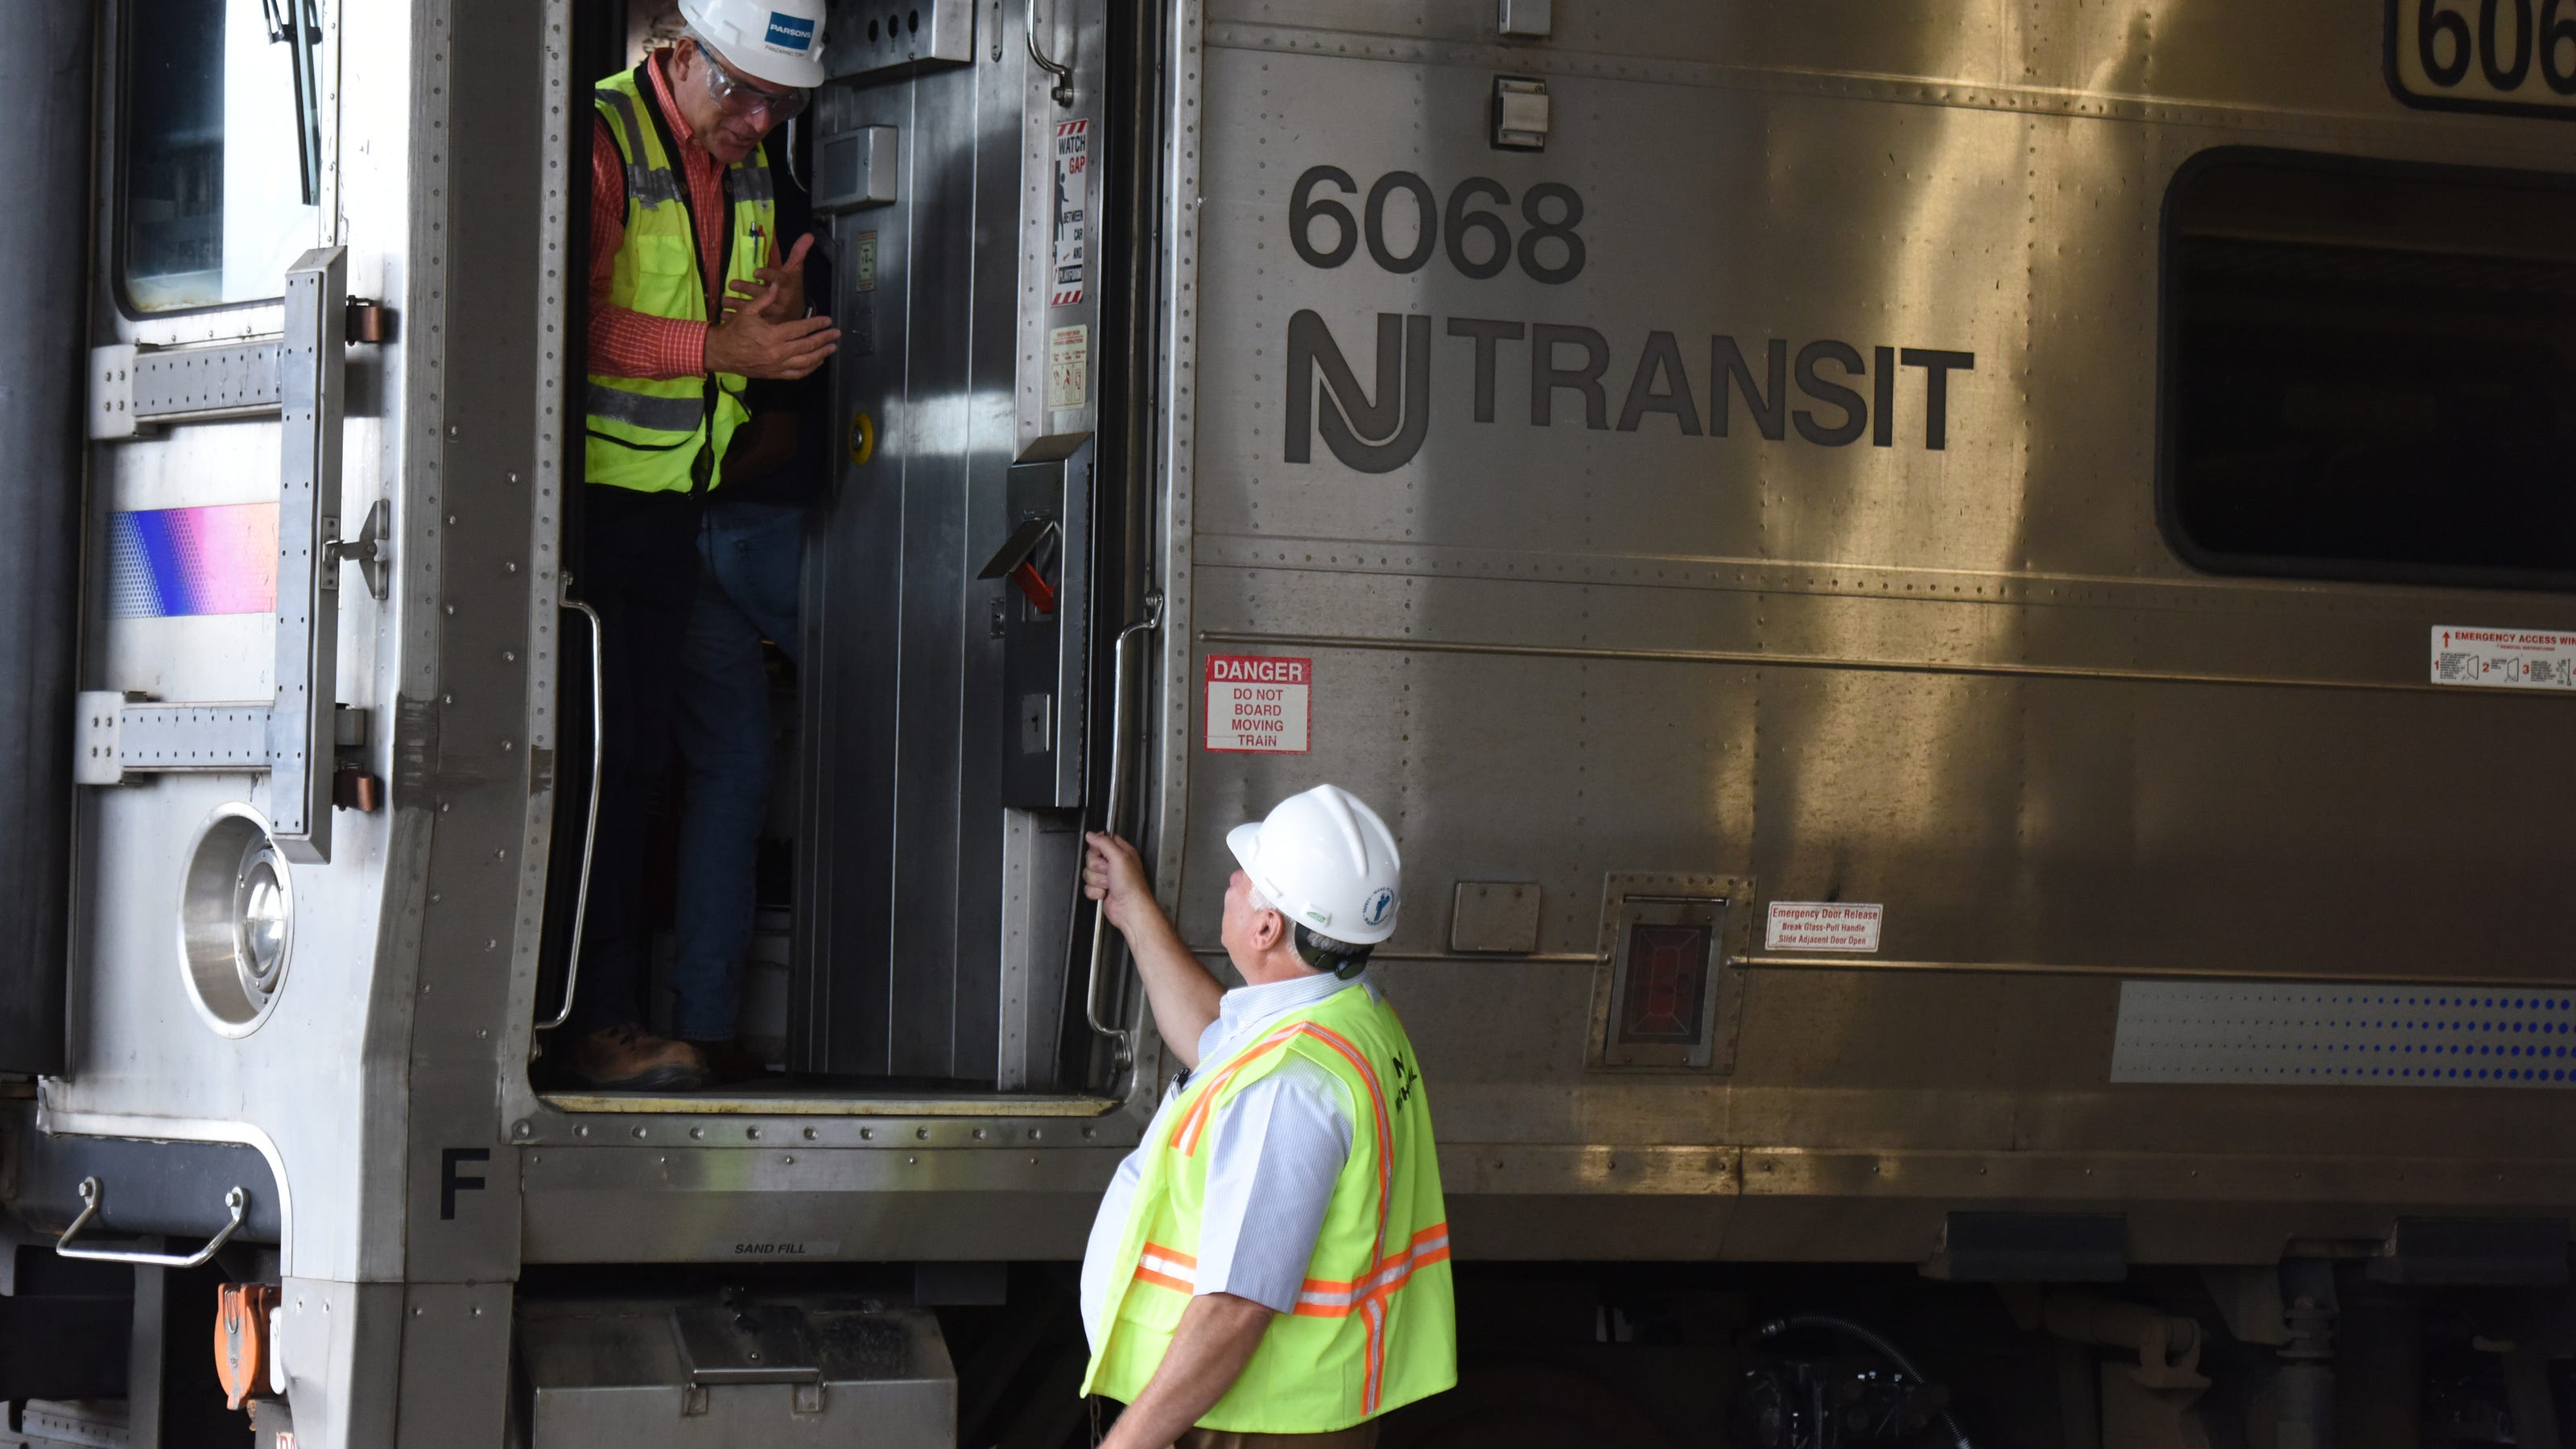 Nj Transit Delays Trains To Finish Positive Train Control